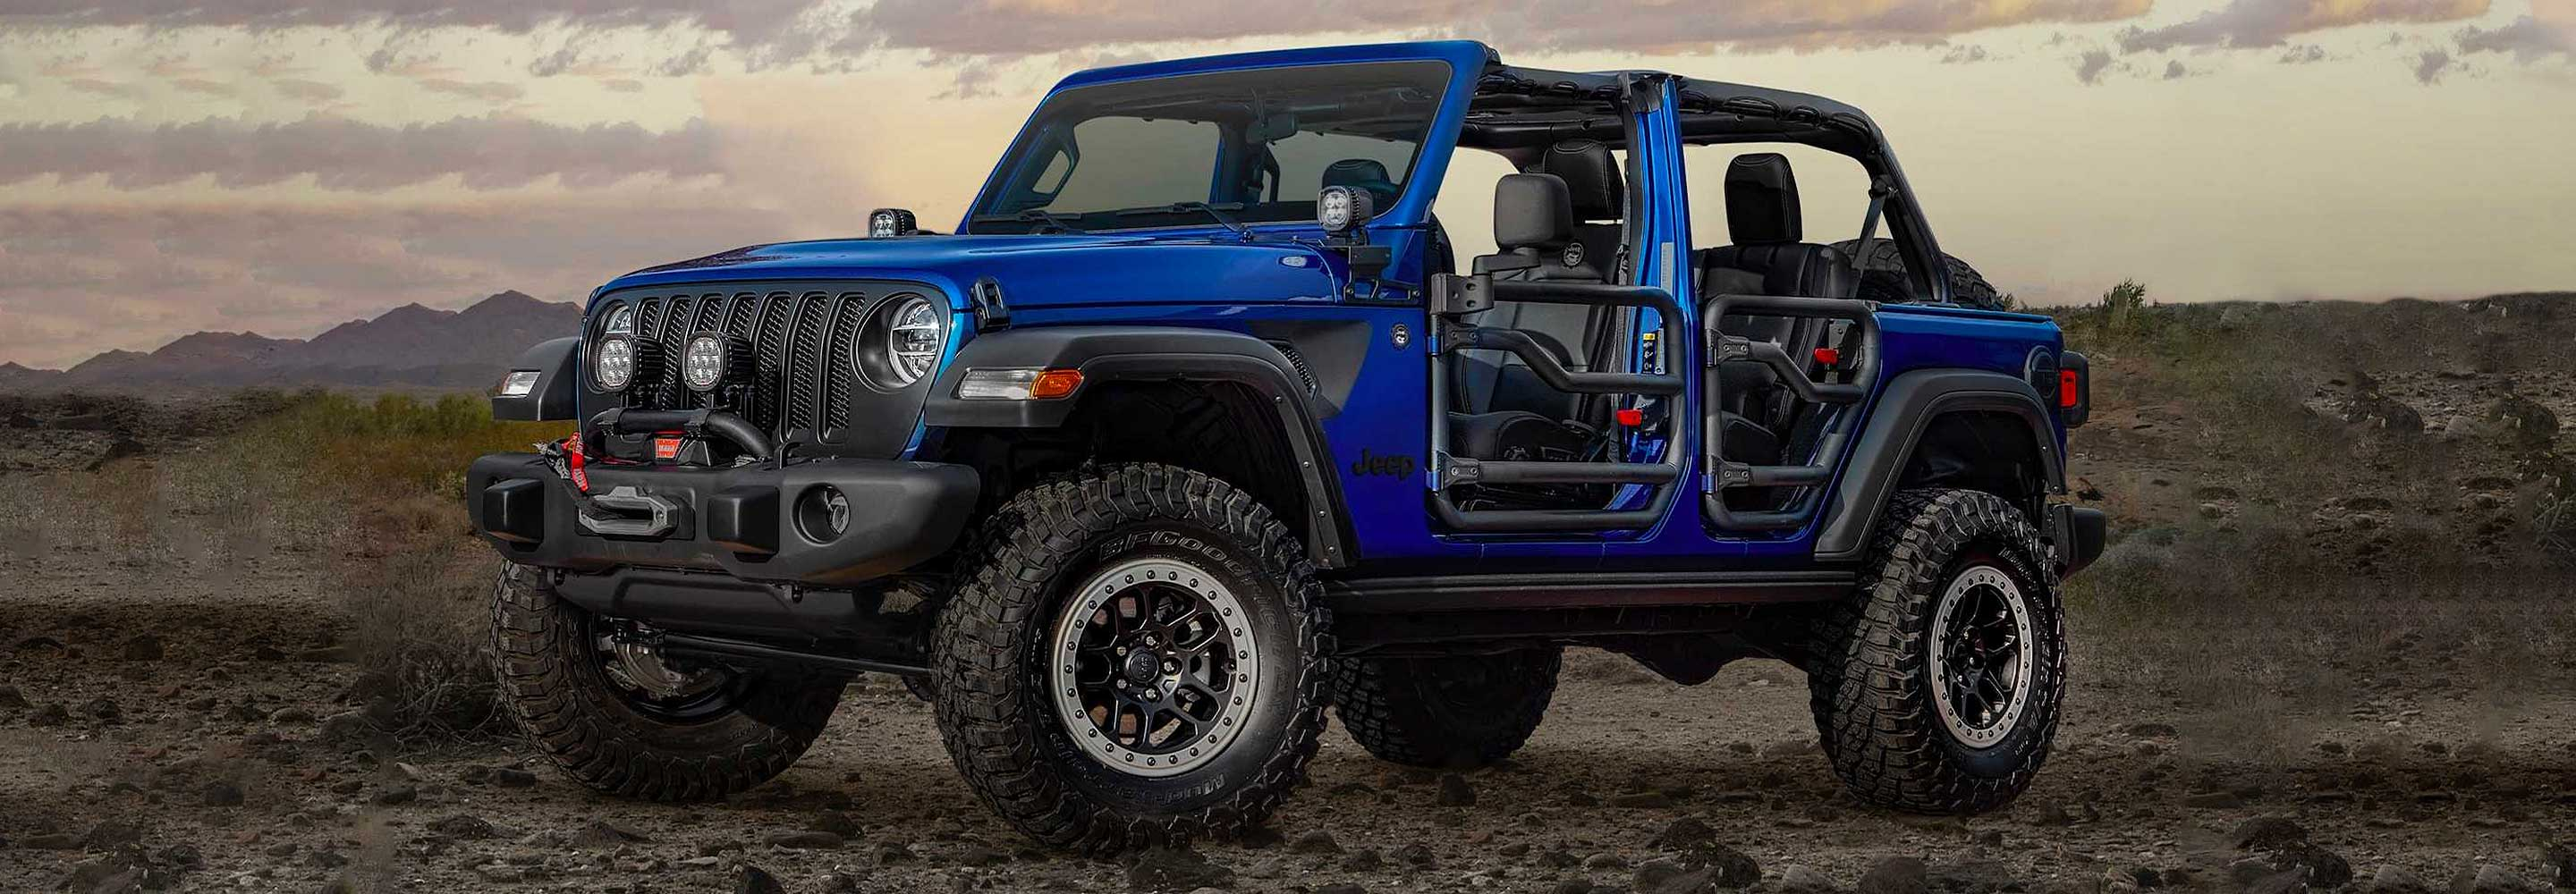 The New Limited-edition Jeep Wrangler JPP 20